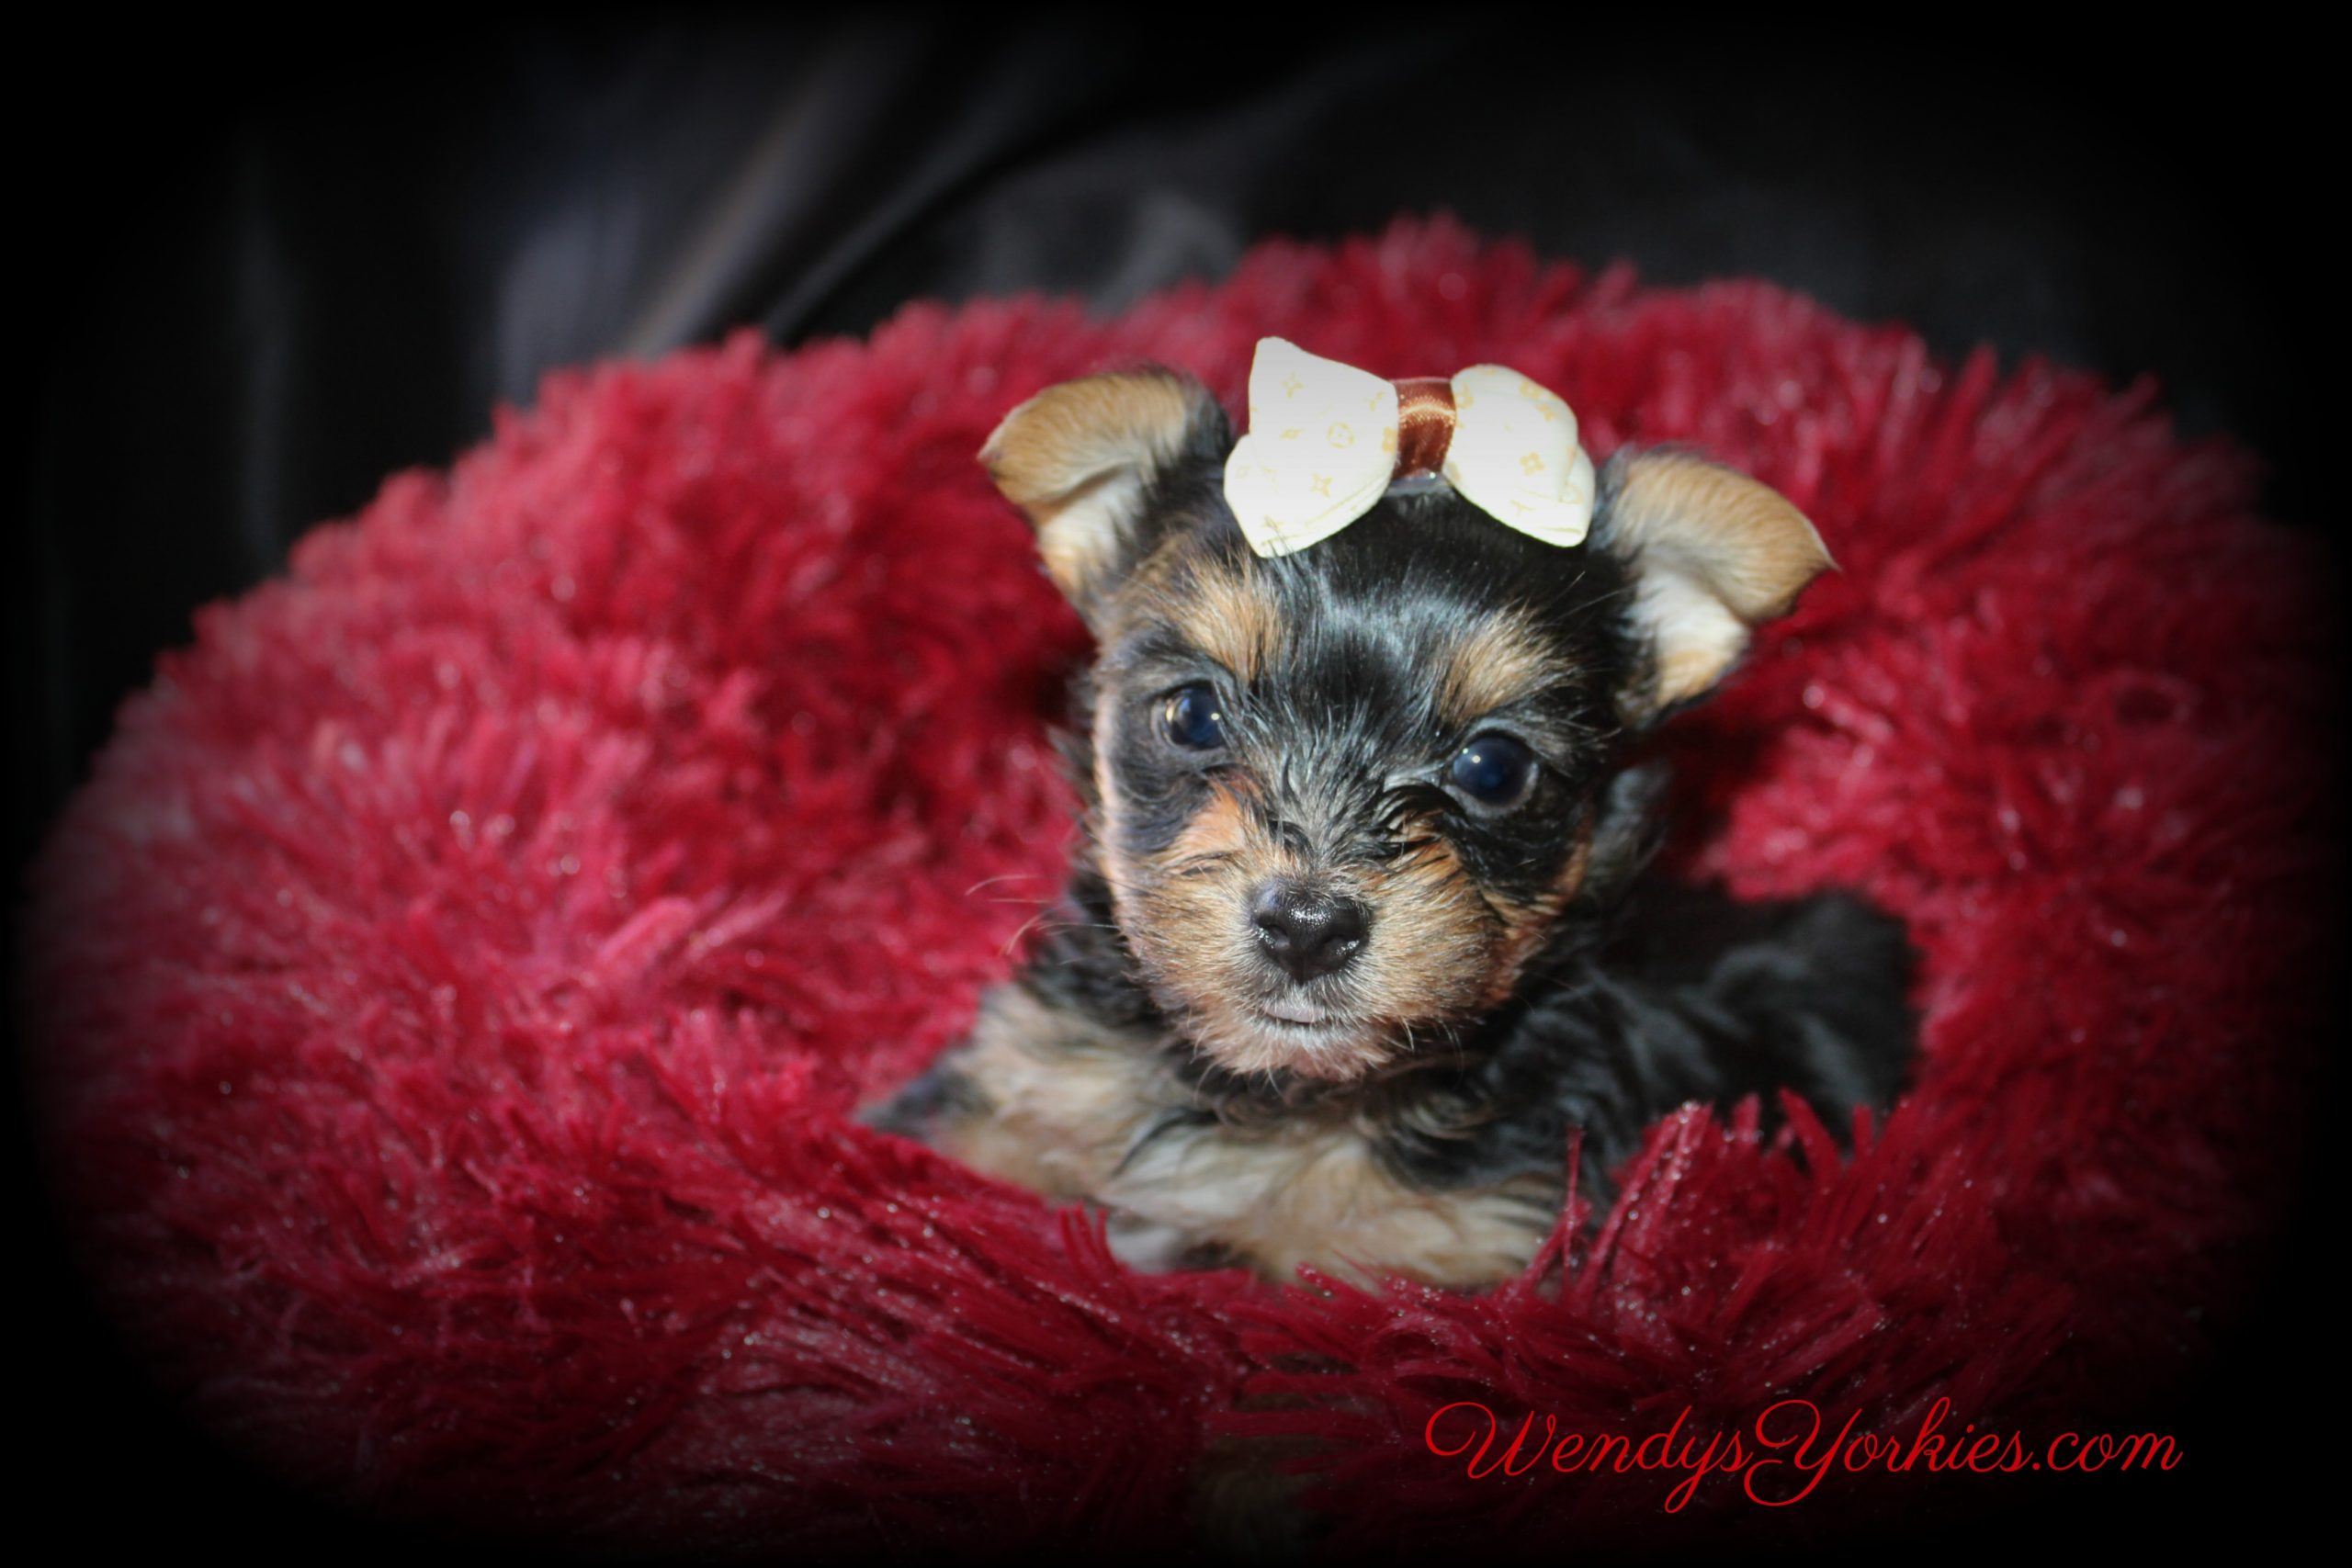 Male Yorkie puppies for sale, WendysYorkies.com, Anna m1